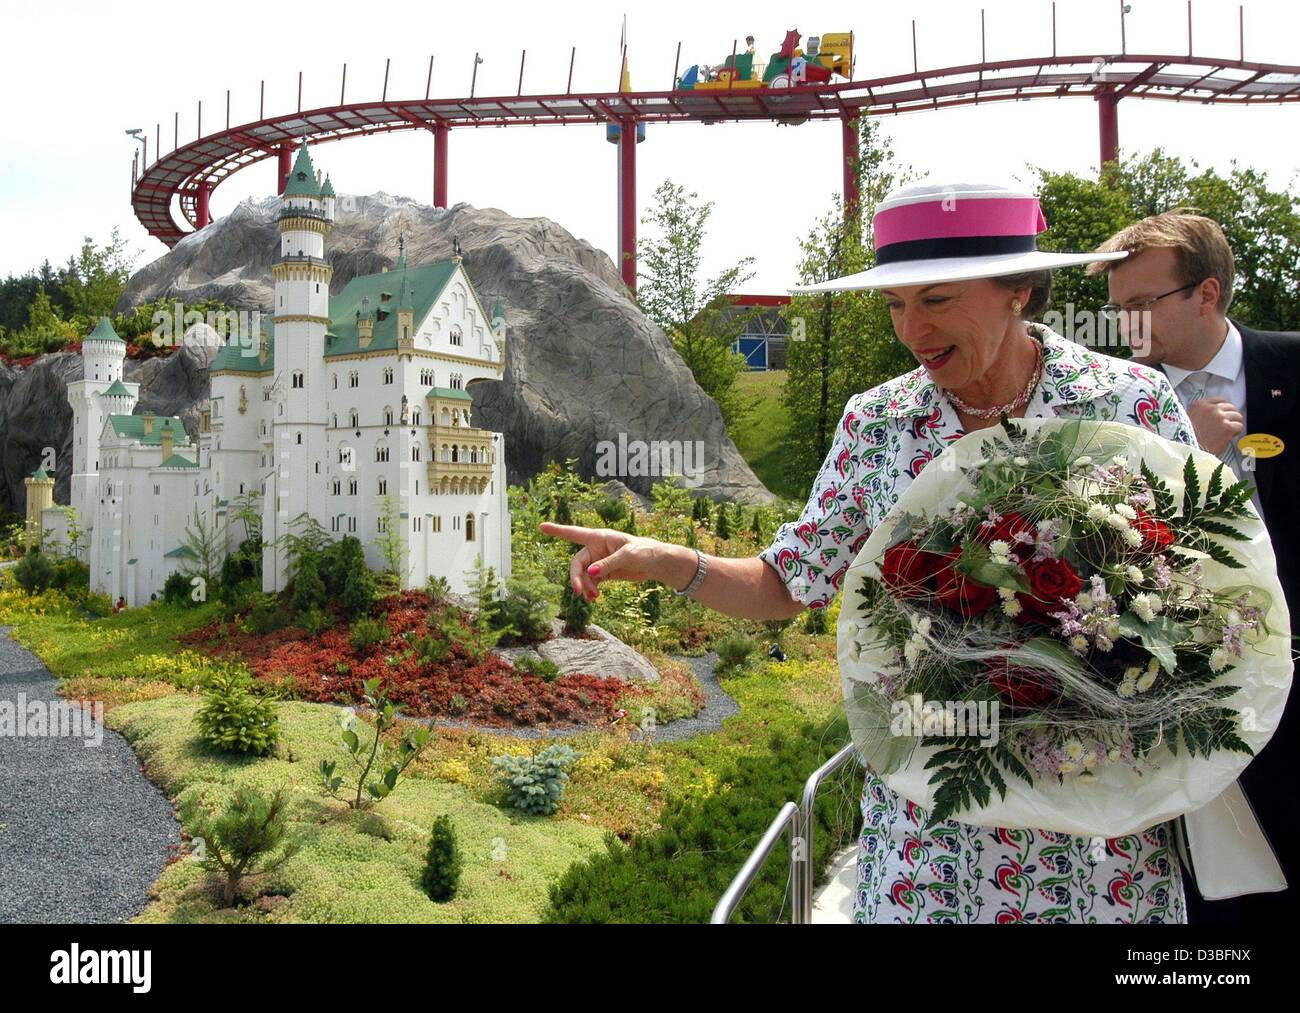 (dpa) - Danish princess Benedikte (front, R) and the managing business director of the Legoland park, Stig Blicher - Stock Image